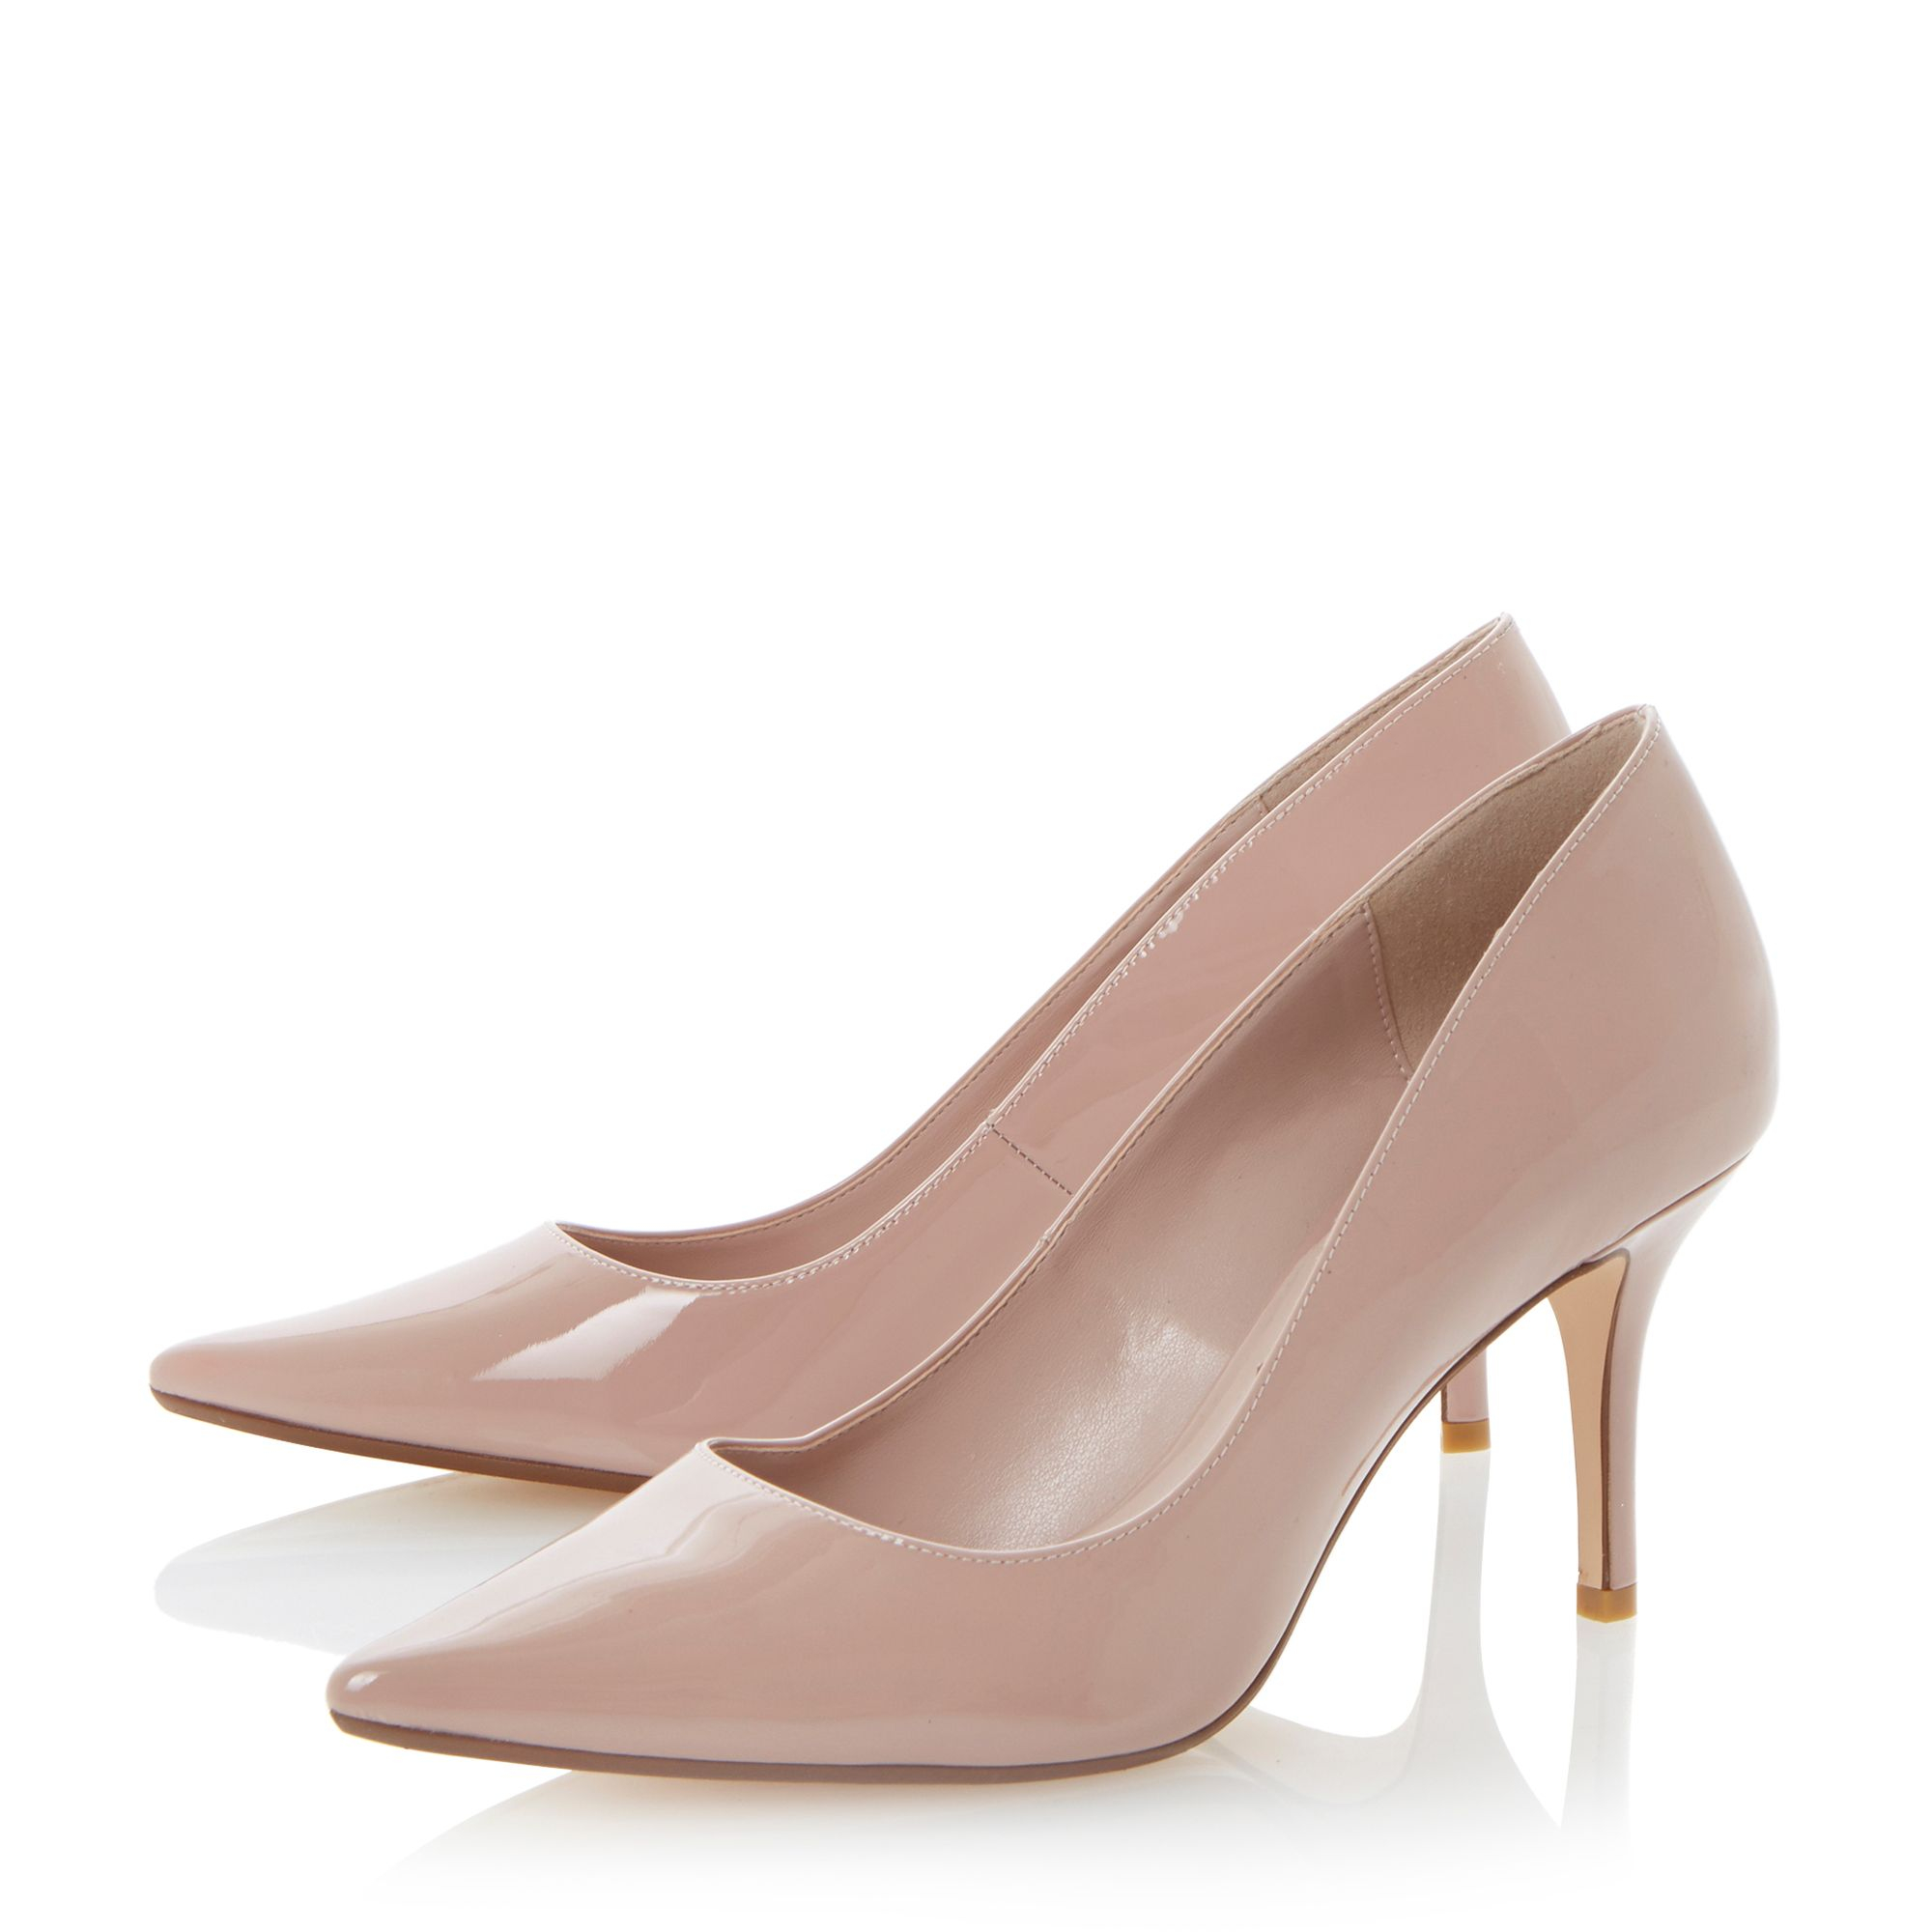 Nude Mid Heel Shoes - Is Heel